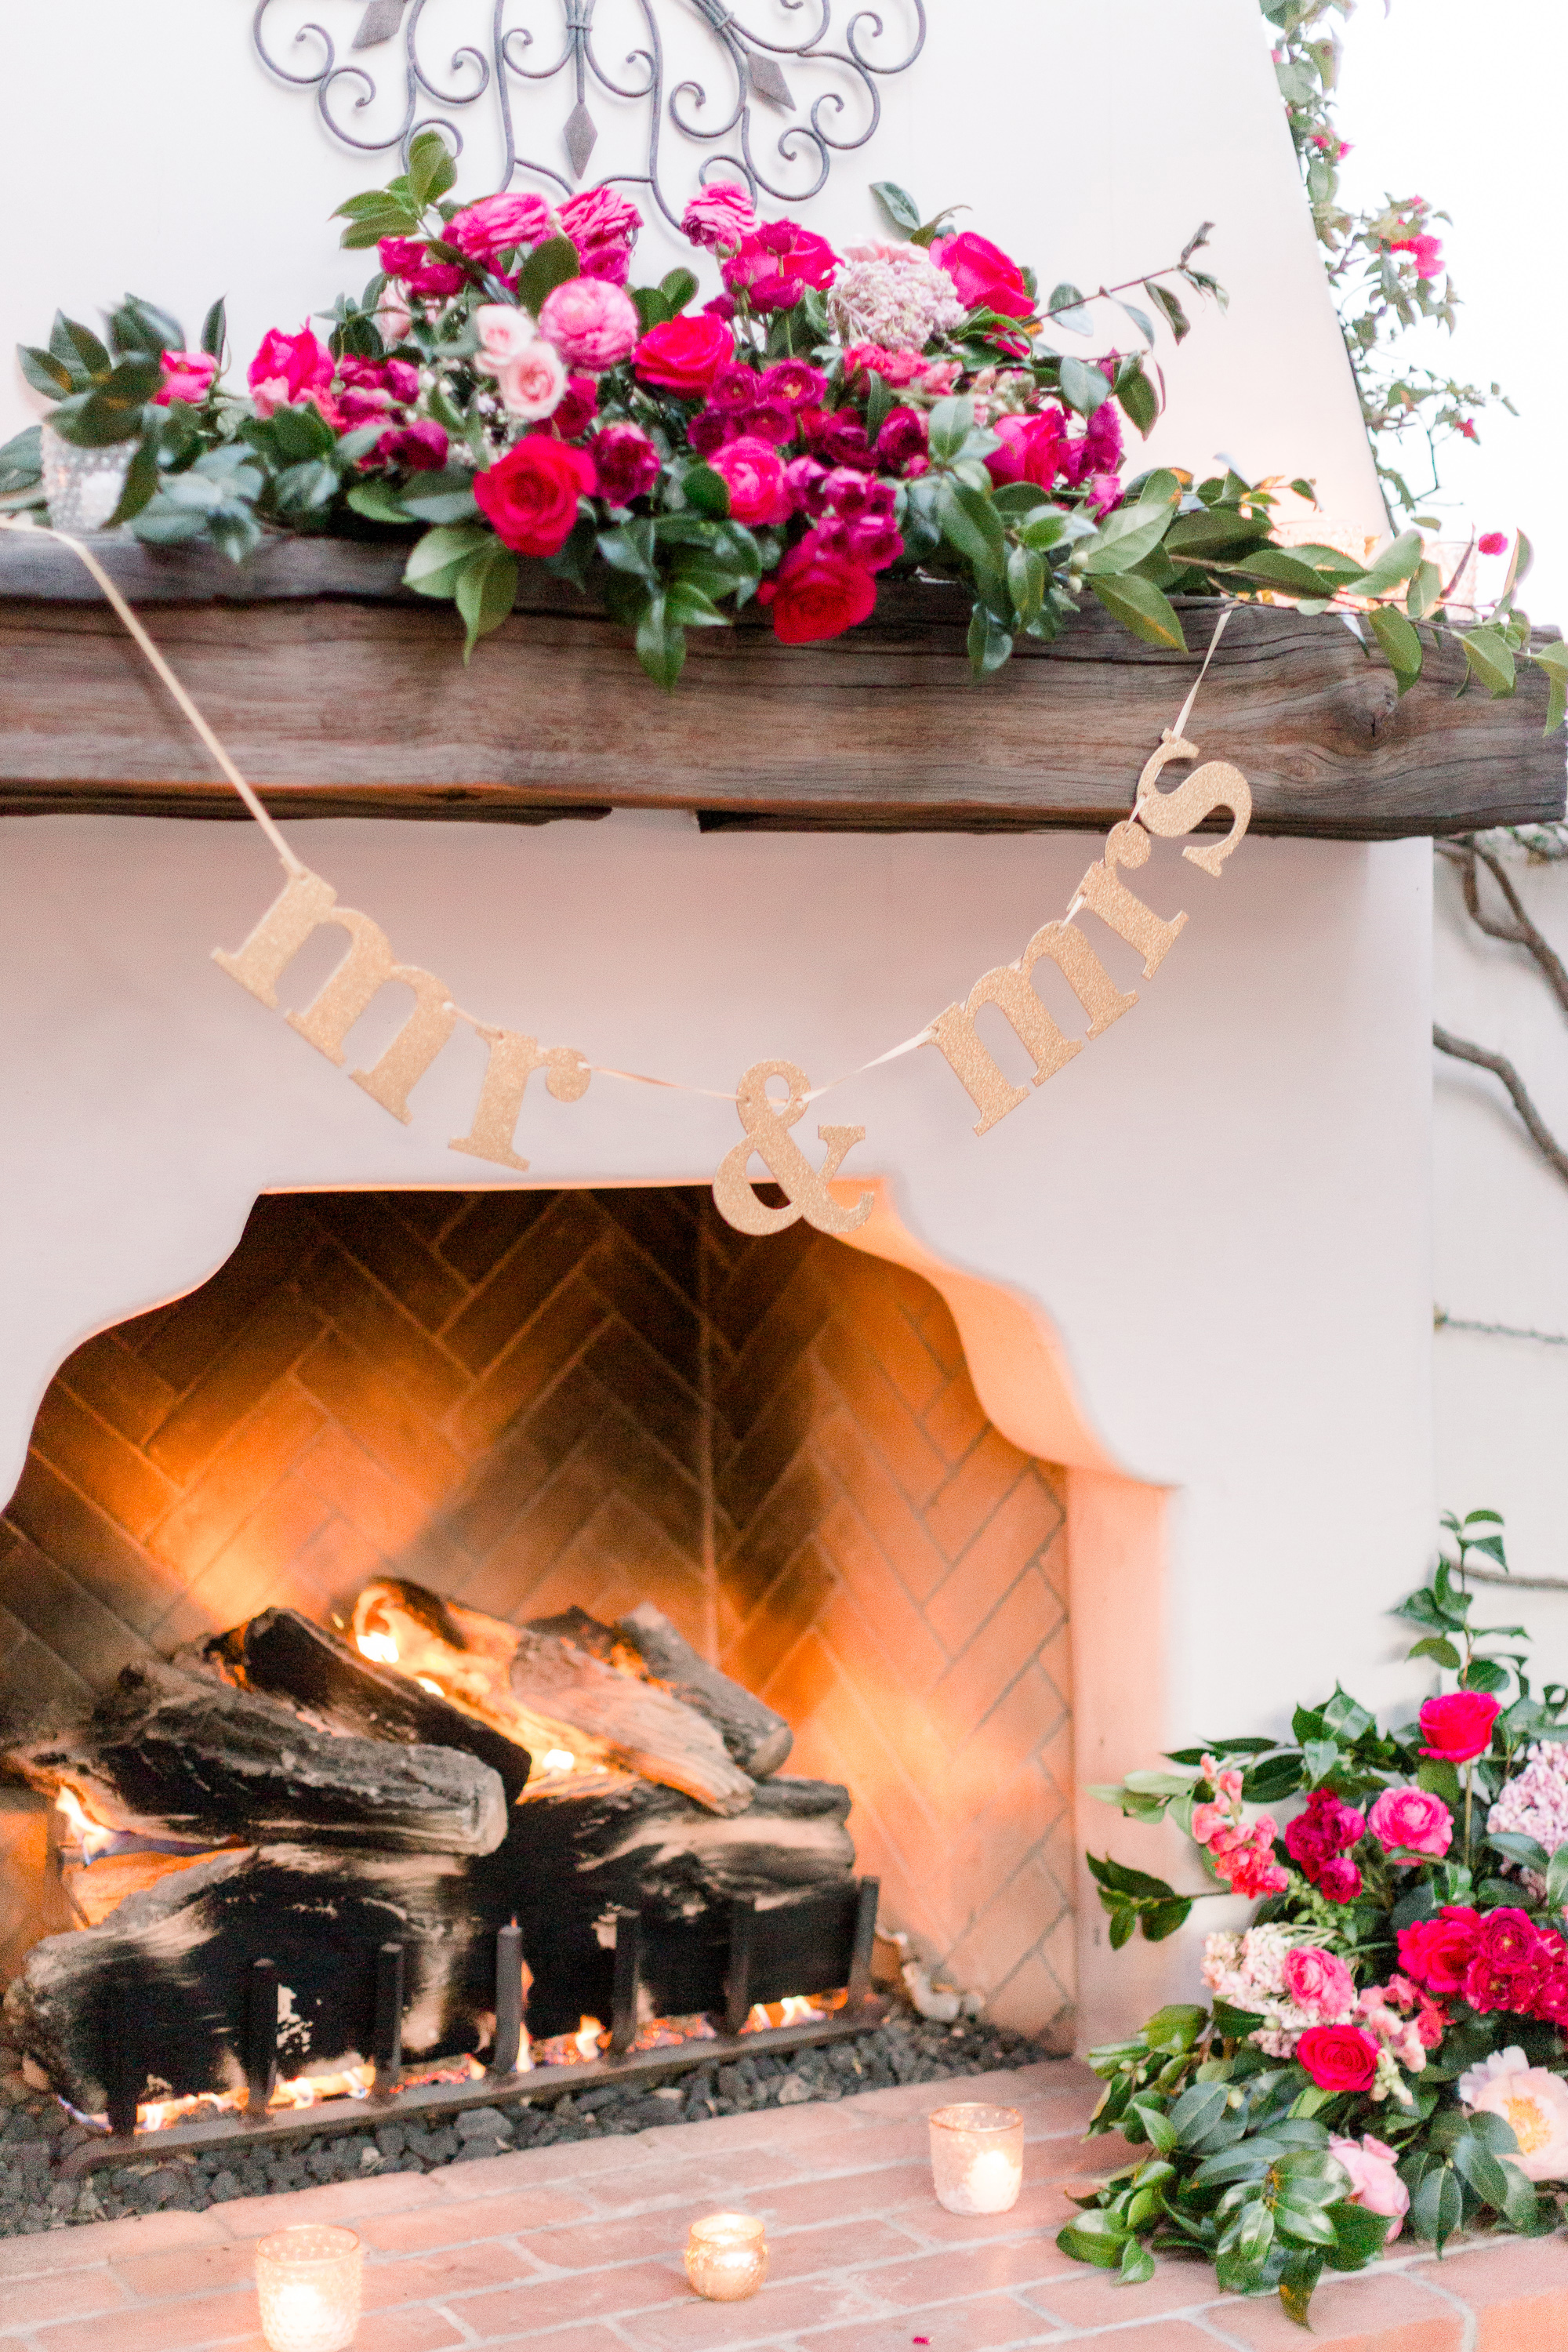 Roxanne and Brandon's El Chorro Wedding - Arizona florist Phoenix scottsdale Mesa chandler Sedona Prescott - Sweetheart Table Fireplace Decor